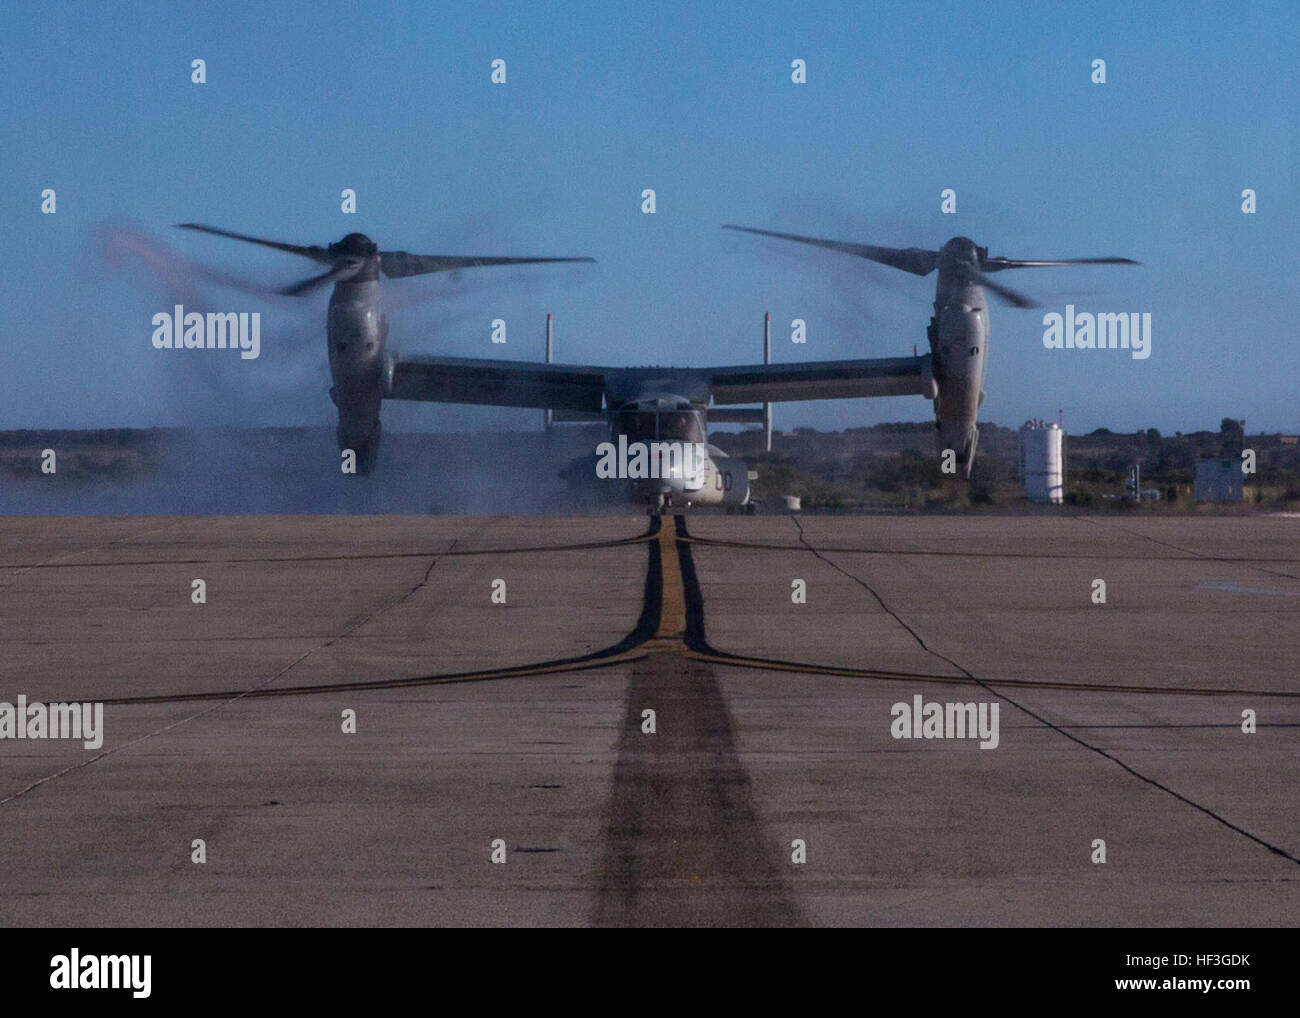 Colonel Anthony Bianca, commanding officer of Marine Aircraft Group (MAG) 16, taxis on the flight line following Stock Photo